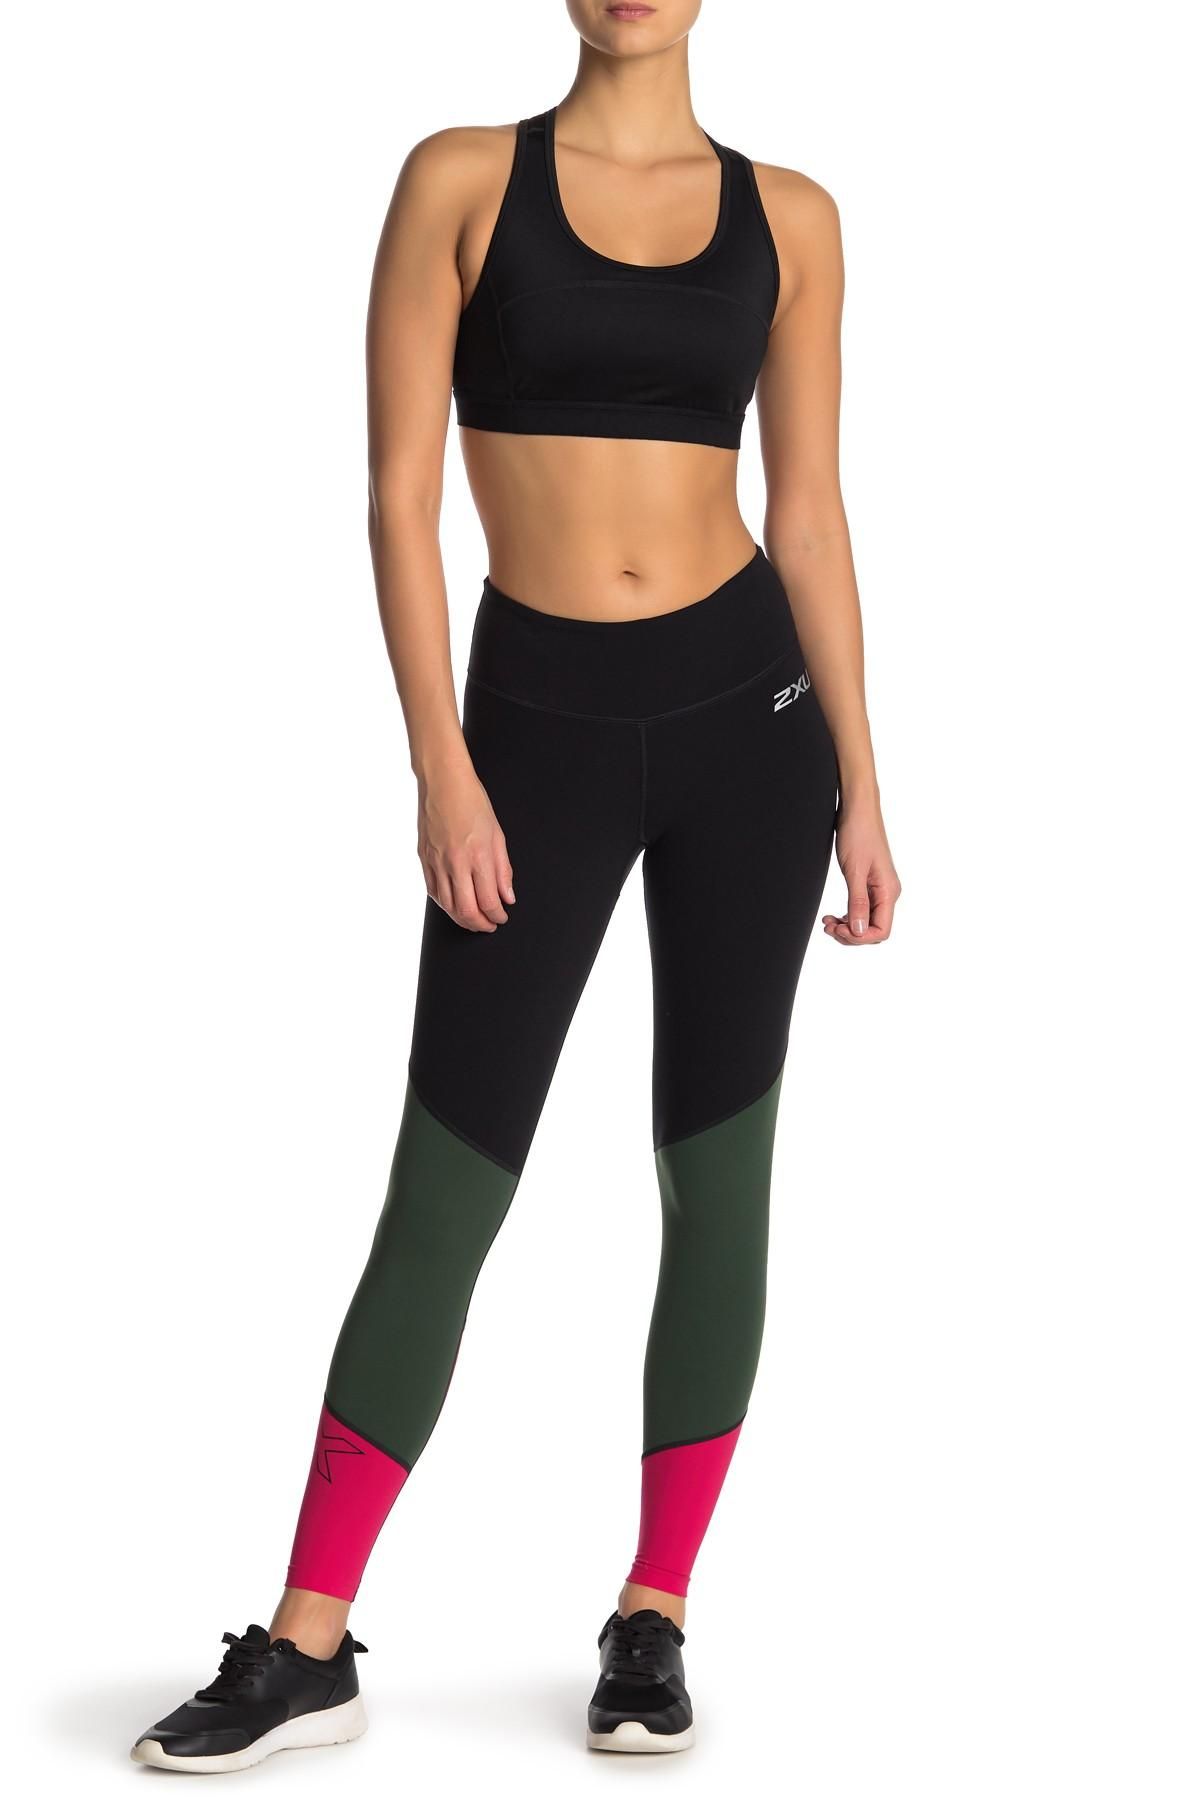 a5d45bedf1 Lyst - 2XU Mid Rise Colorblock Fitness Tights in Black